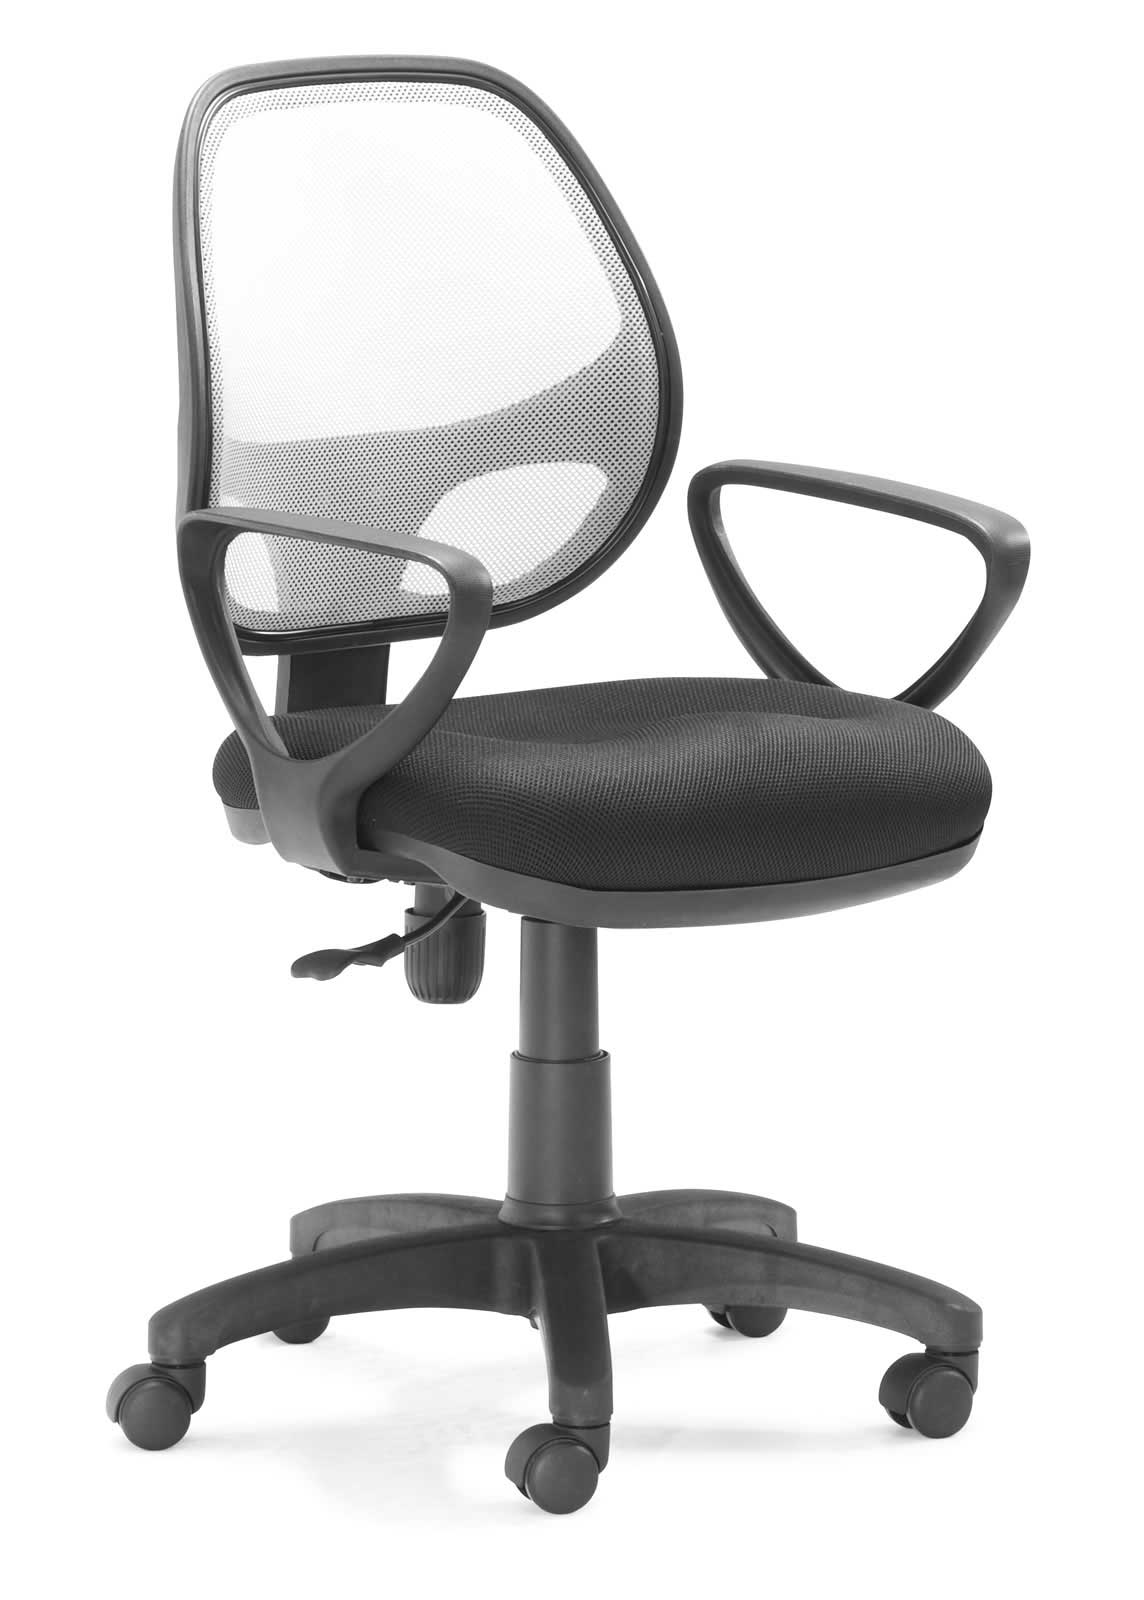 Mesh back adjustable task chair with arms